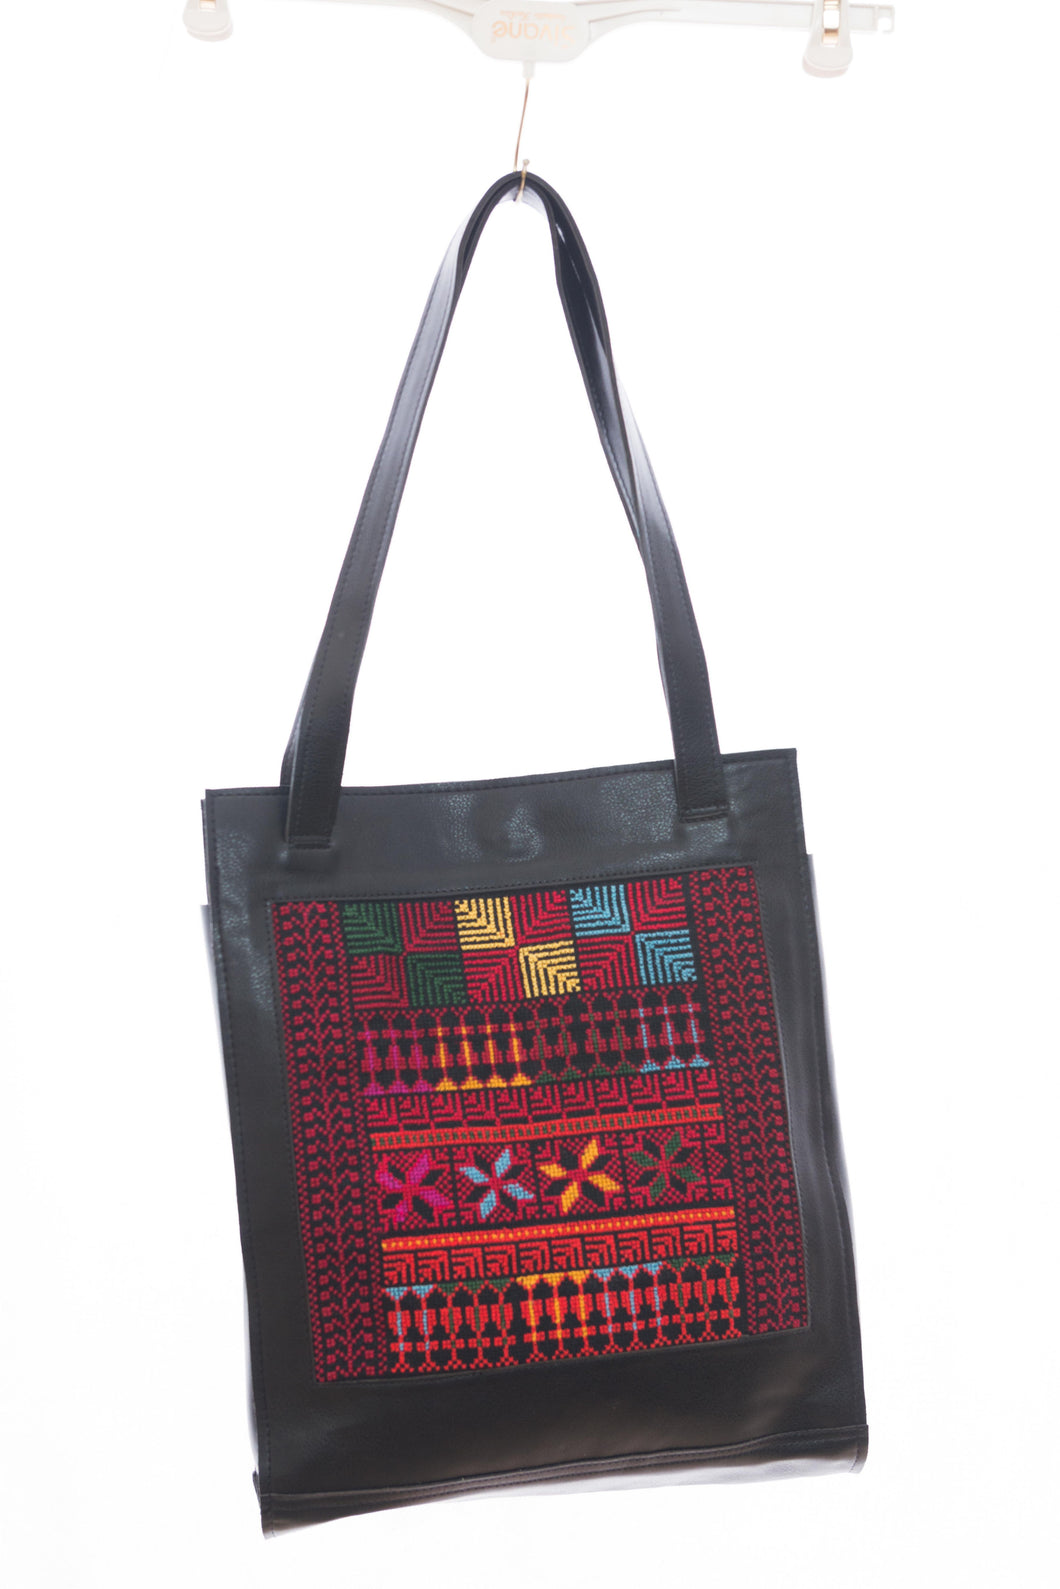 Square shaped handbag with special leather and traditional Palestinian embroidery - Falastini Brand